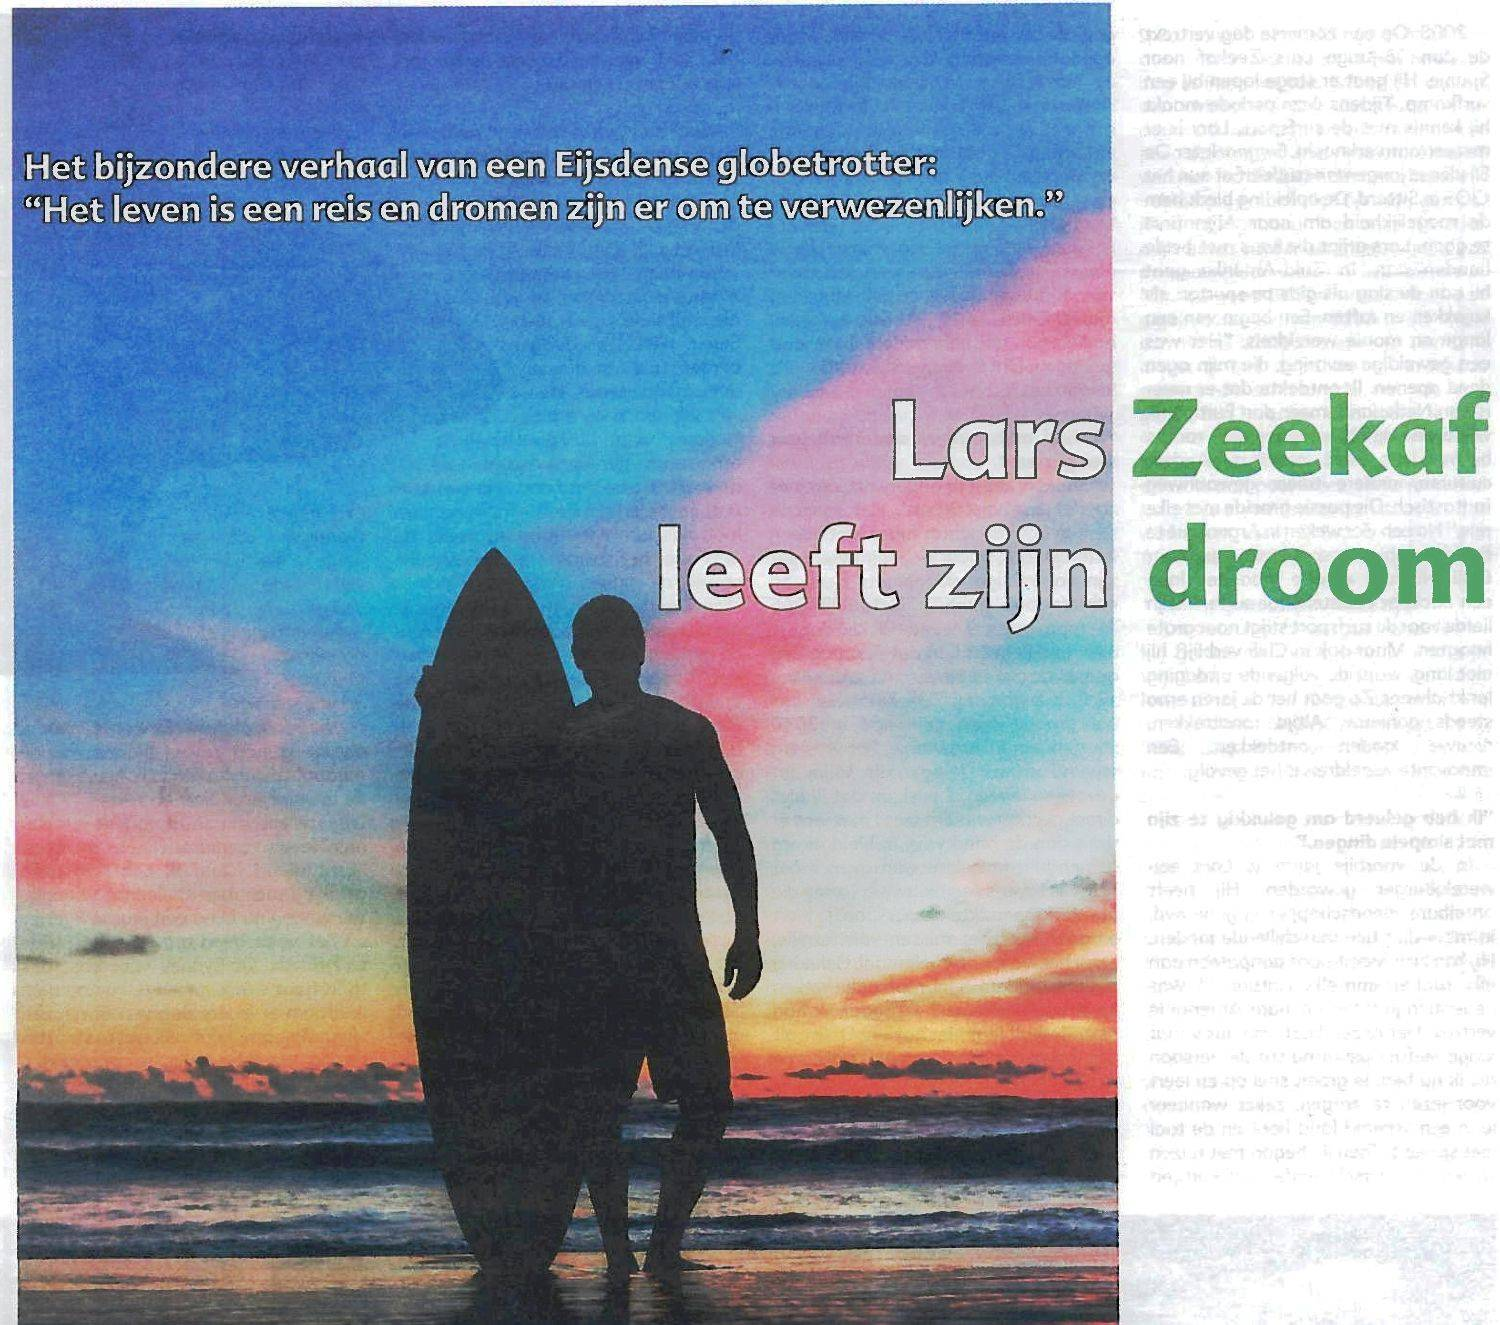 2015, March. Lars Zeekaf lives his dream | Local newspaper